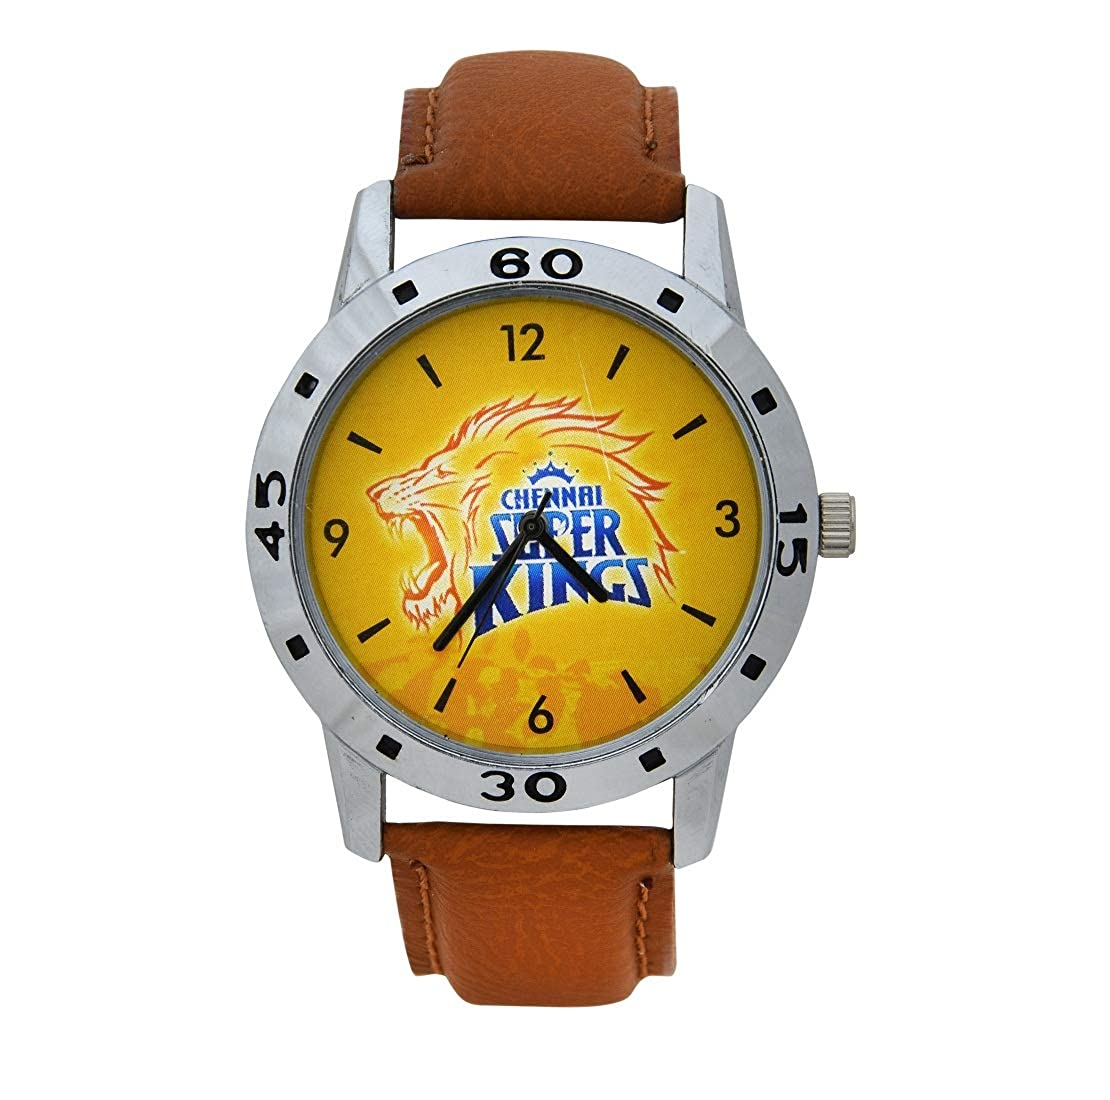 CSK IPL Theme Watch